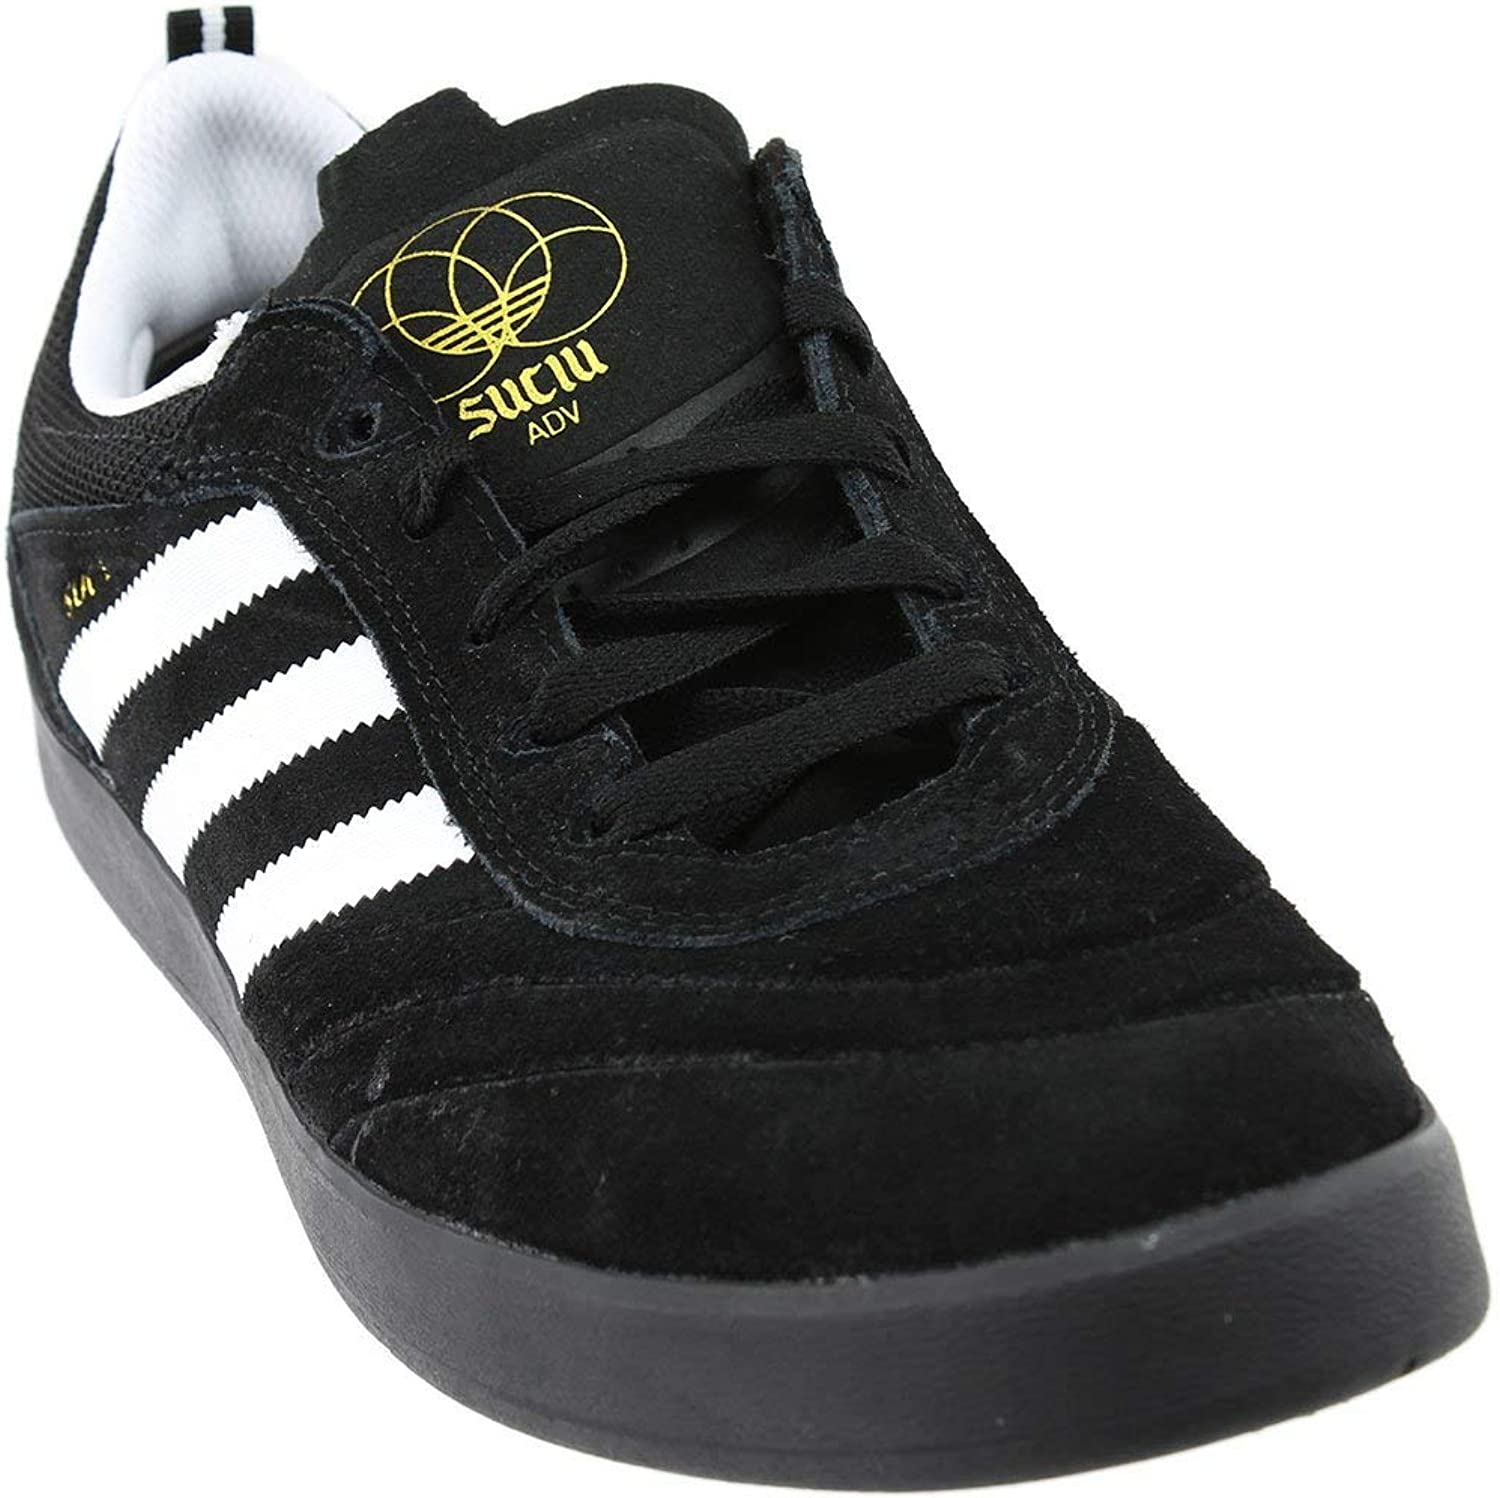 AdidasBY3936 - By3936 Herren B078NJ9MTD  Berühmter Laden